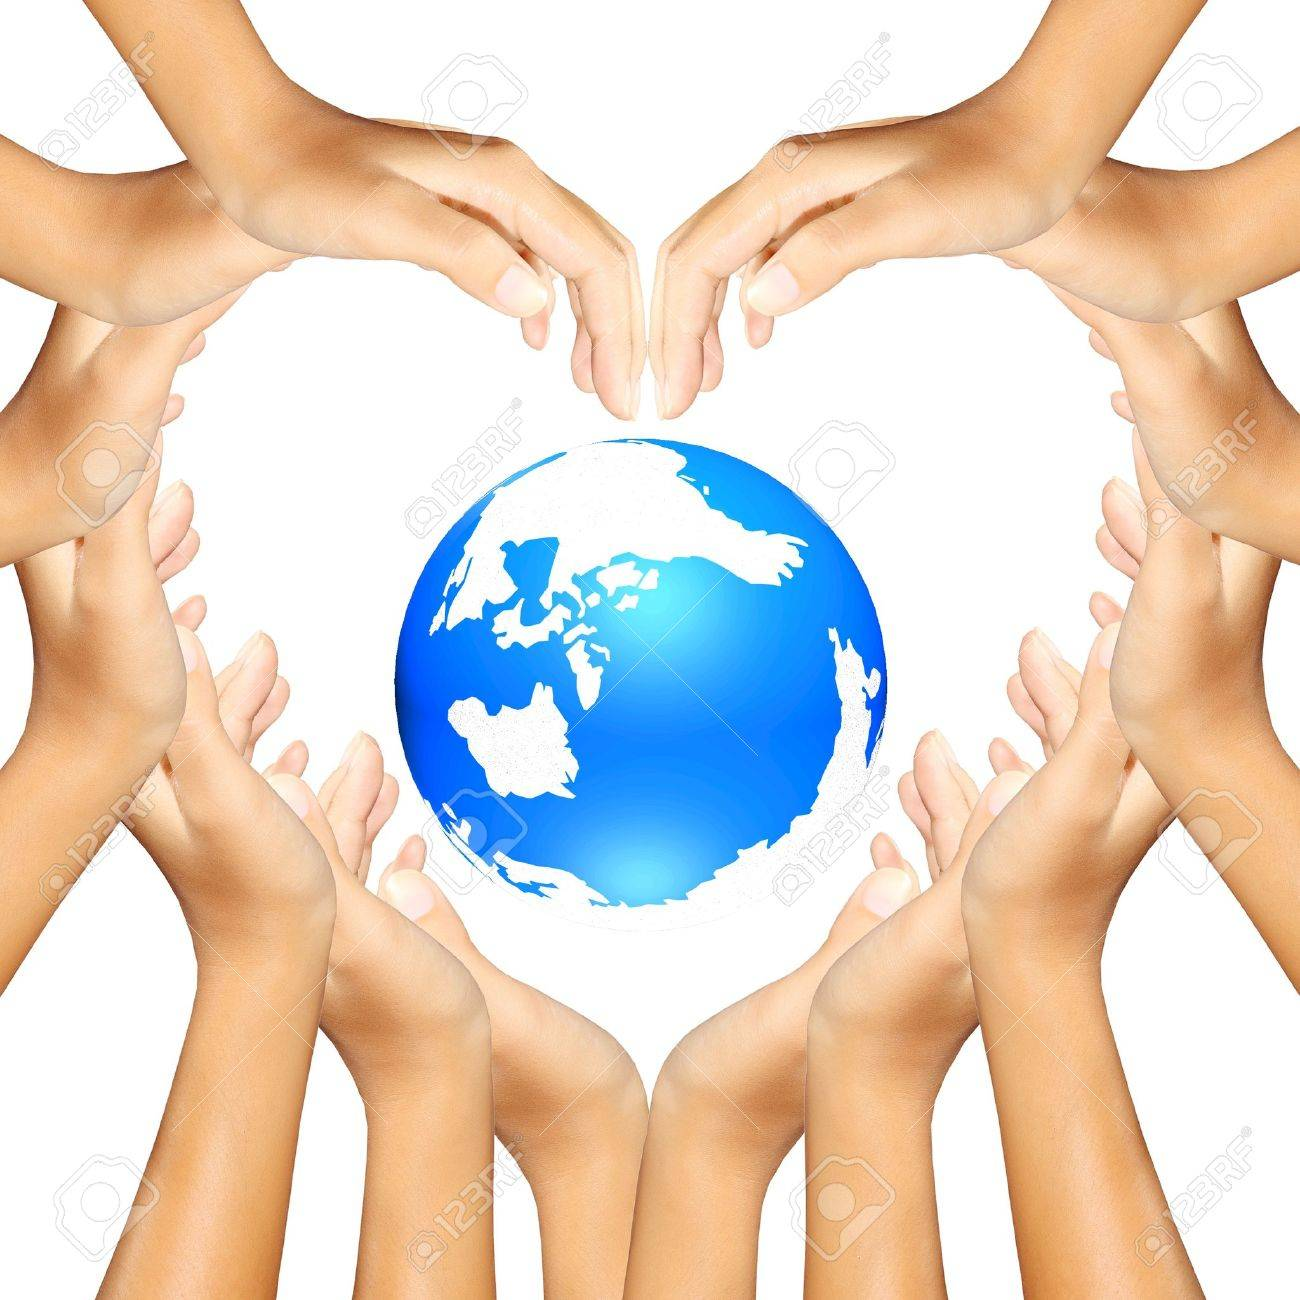 earth in hands making a heart Stock Photo - 11177092